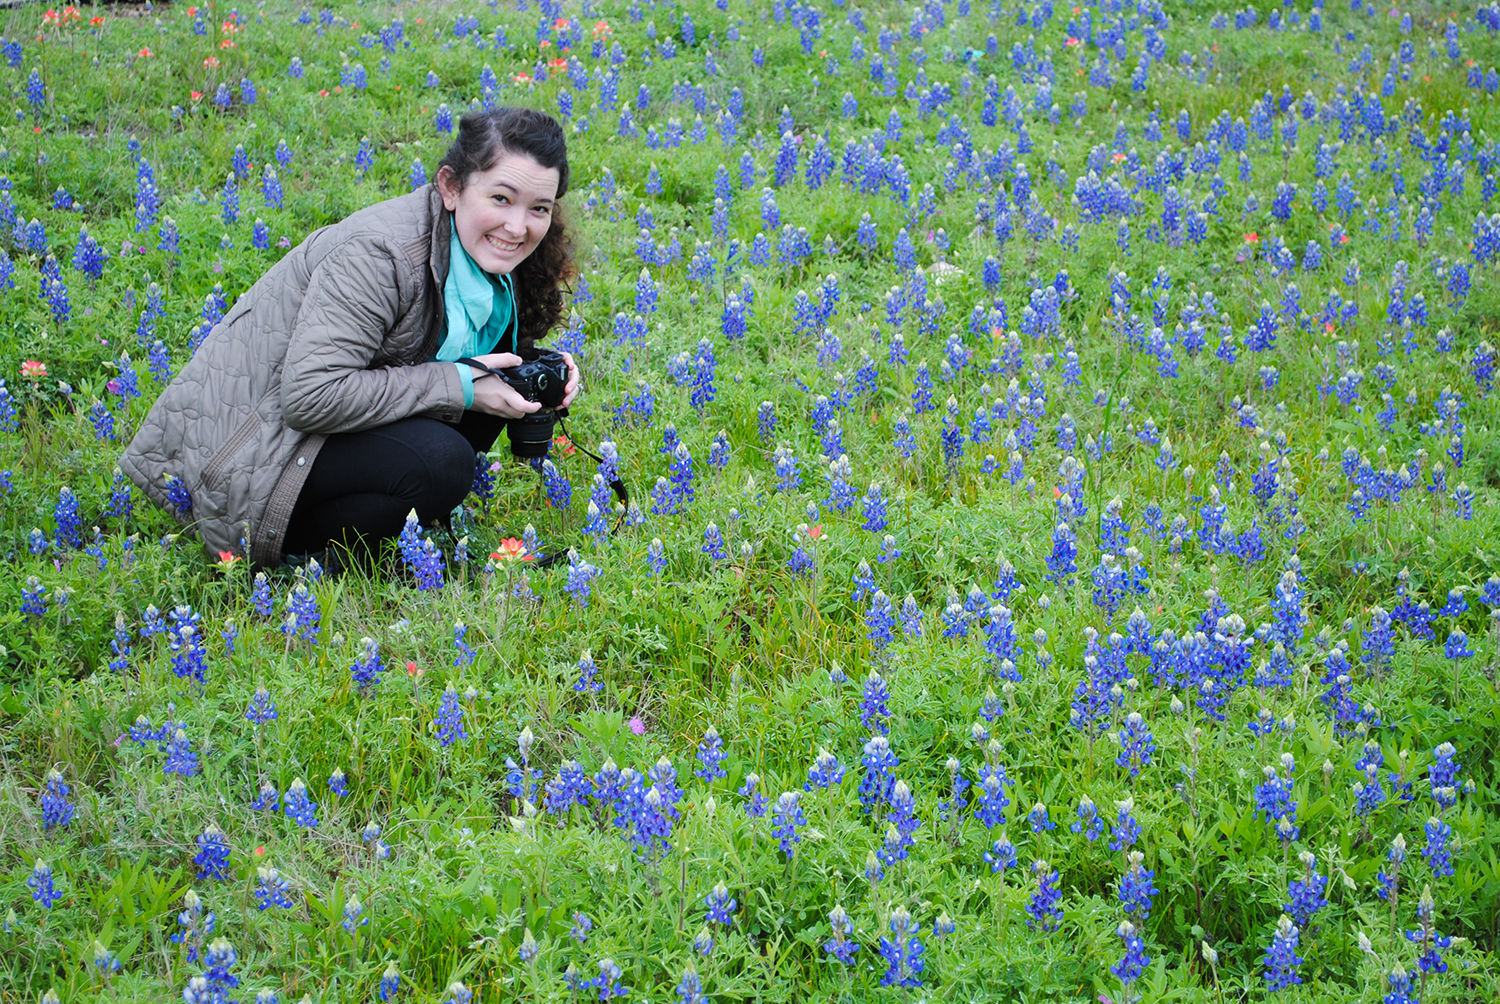 Karen photographing bluebonnets for later drawings.